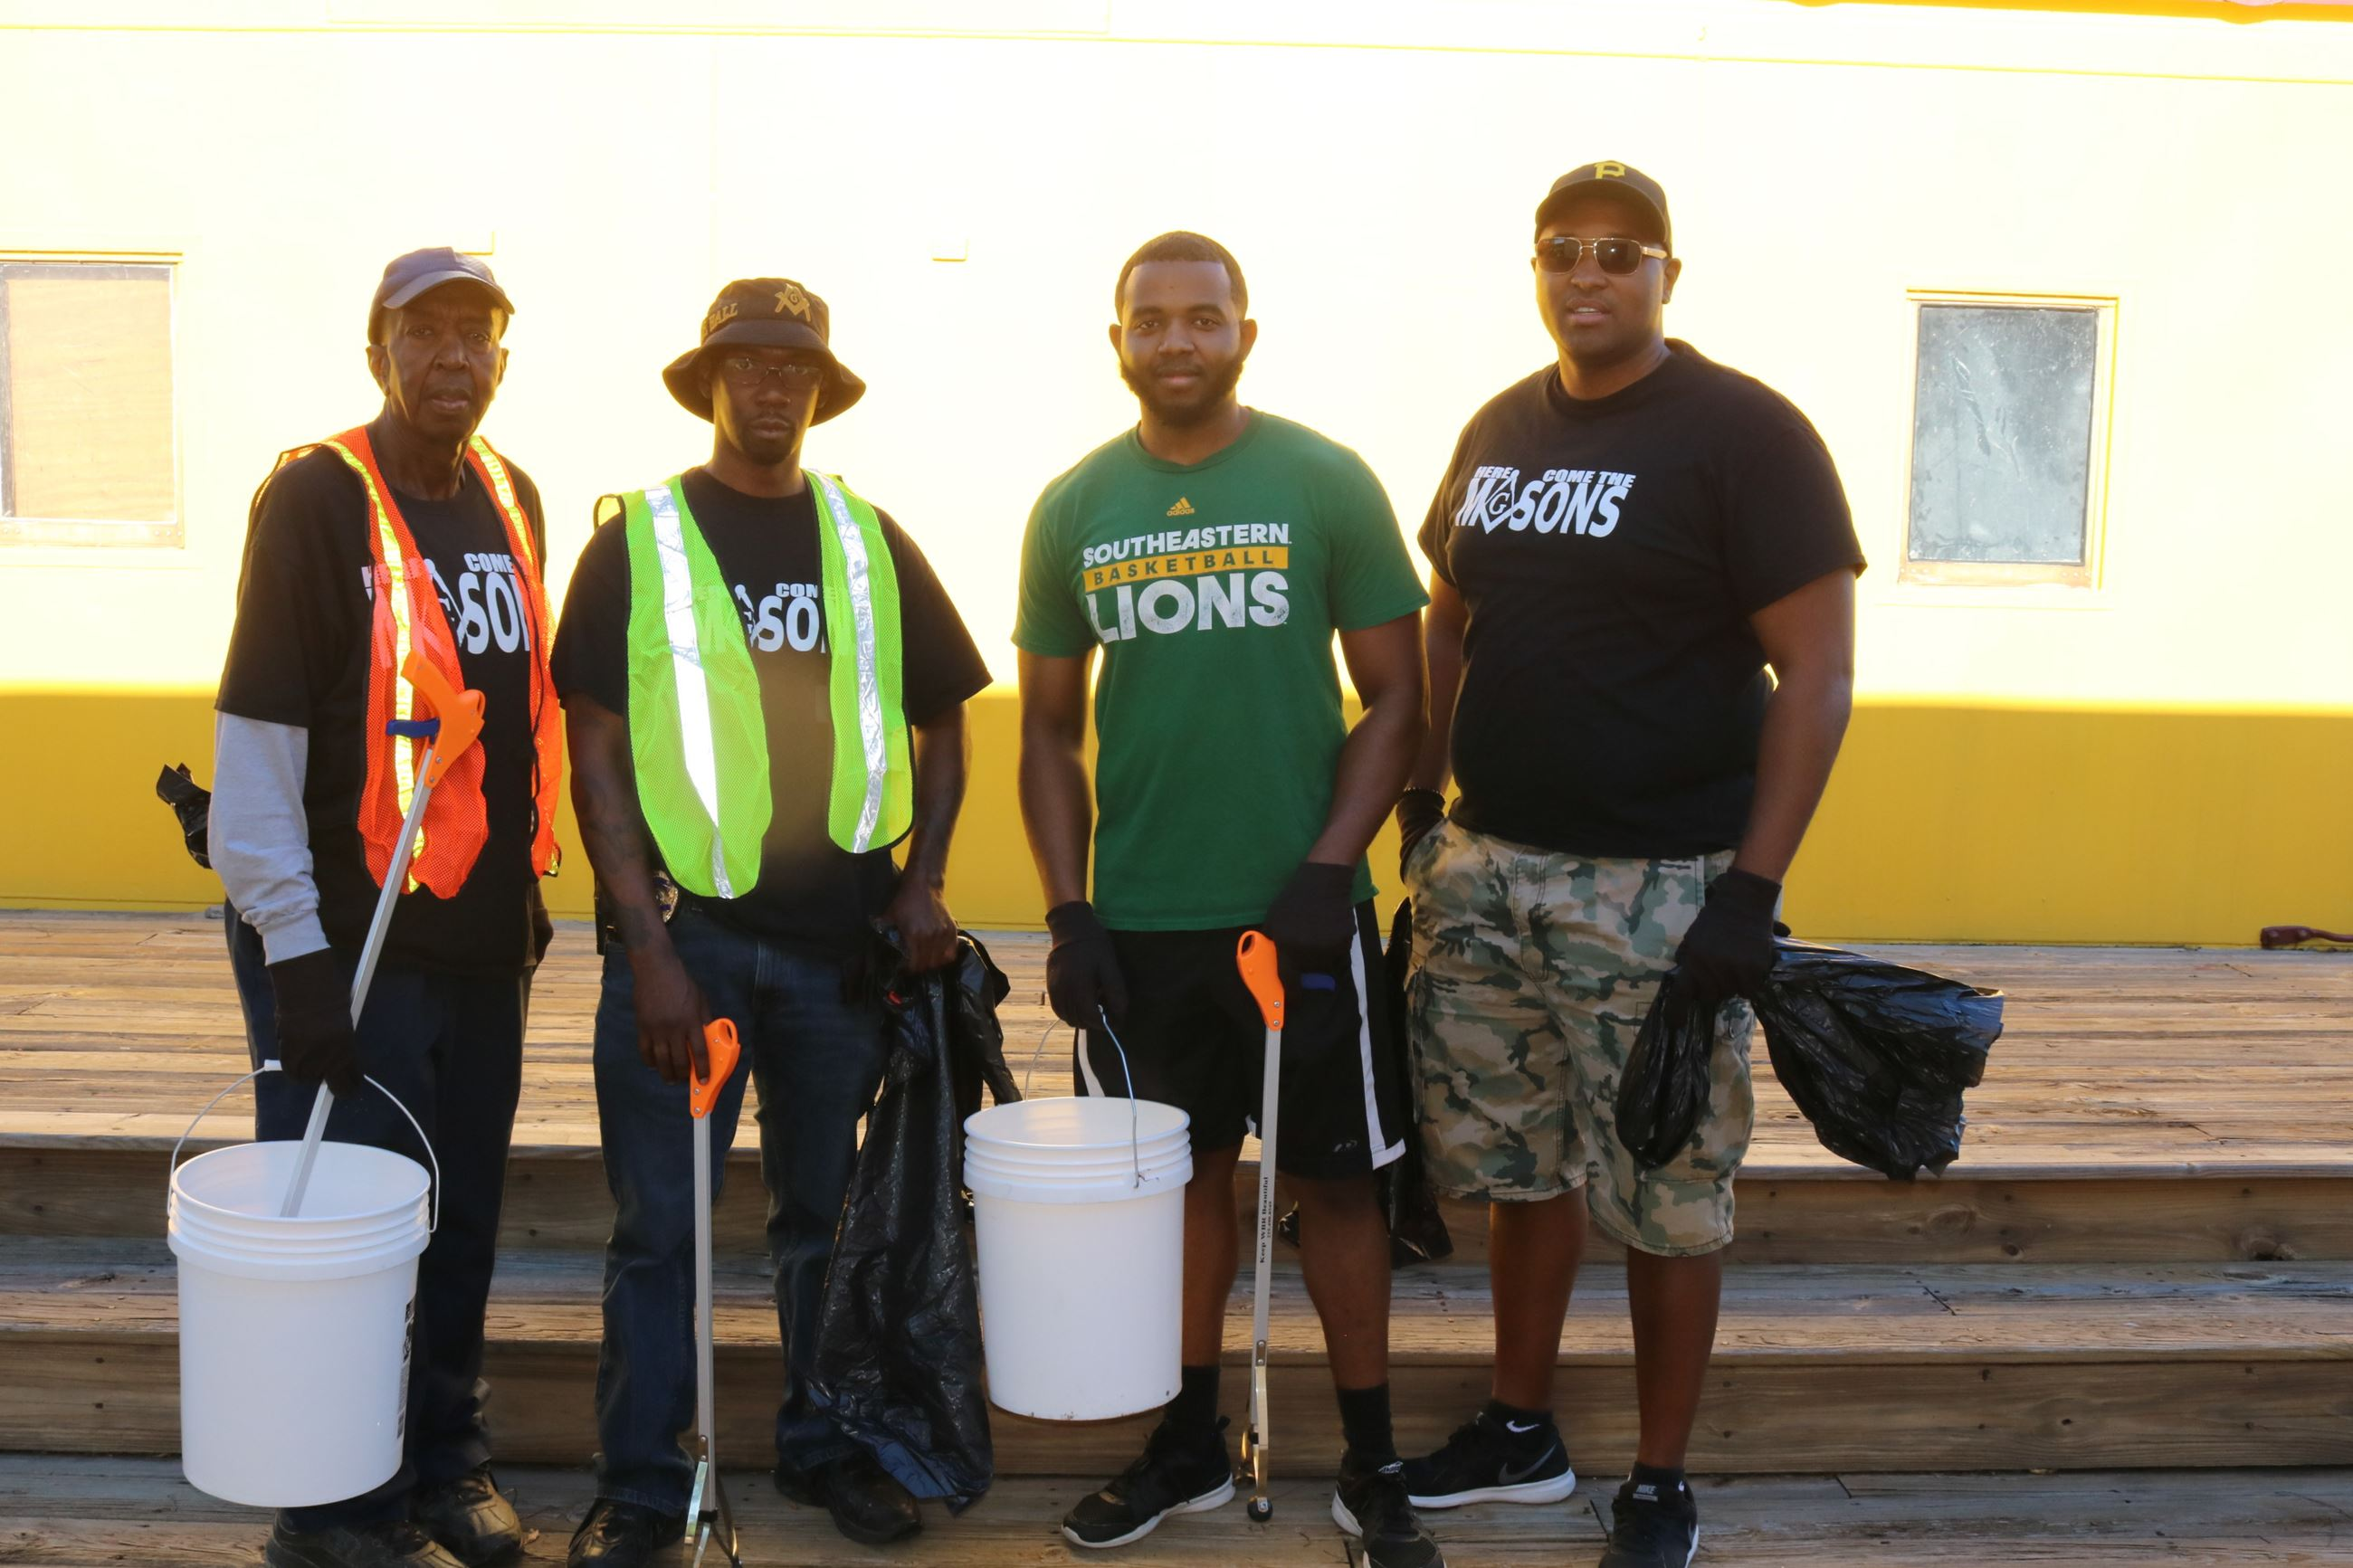 Four men pose together during the clean up event